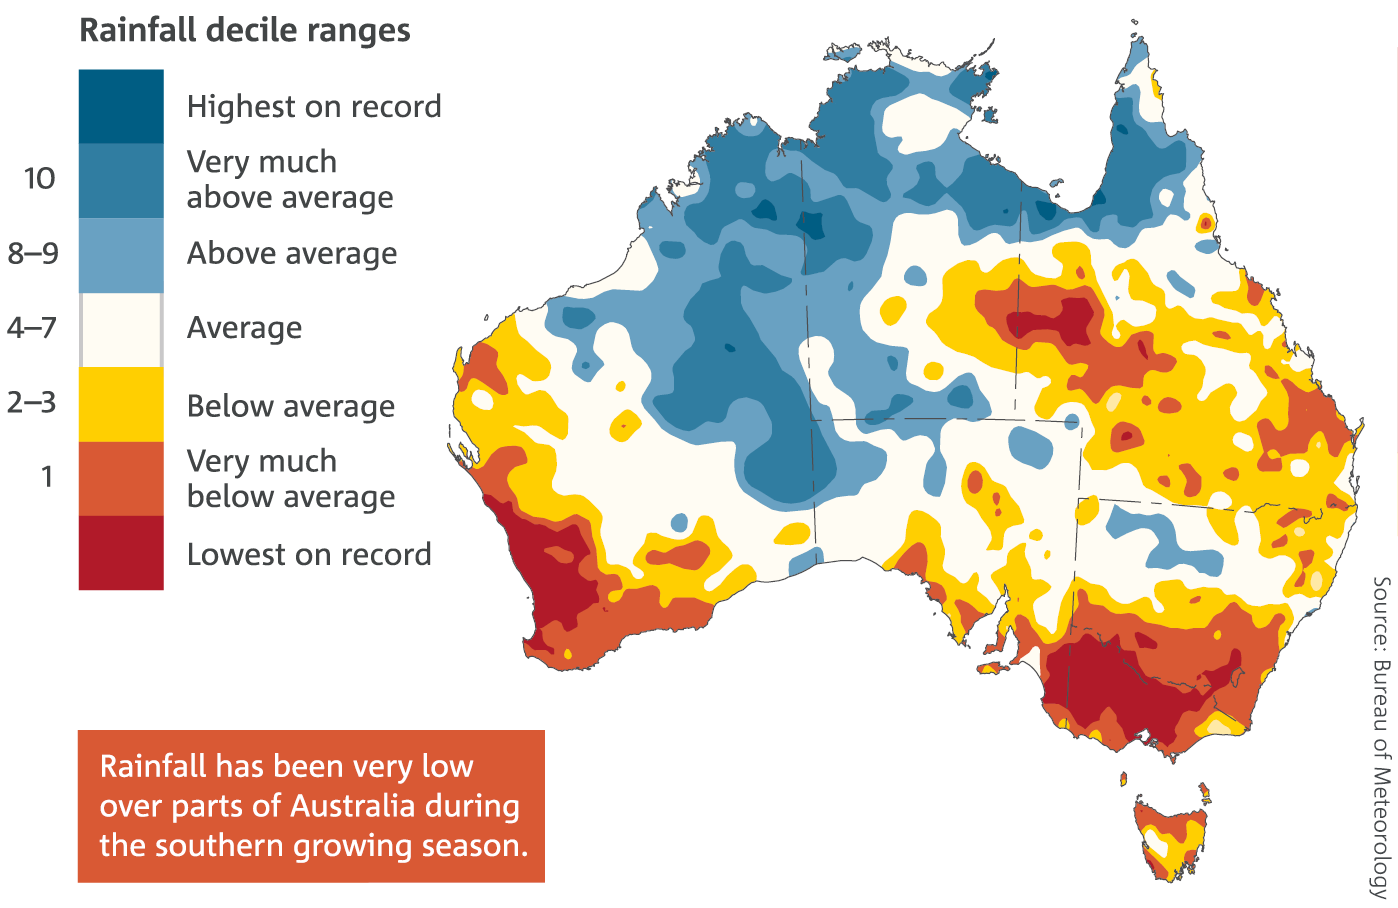 Map: Southern growing season (April–October) rainfall deciles for the last 20 years (1996–2015). Rainfall has been very low over parts of Australia during the southern growing season.